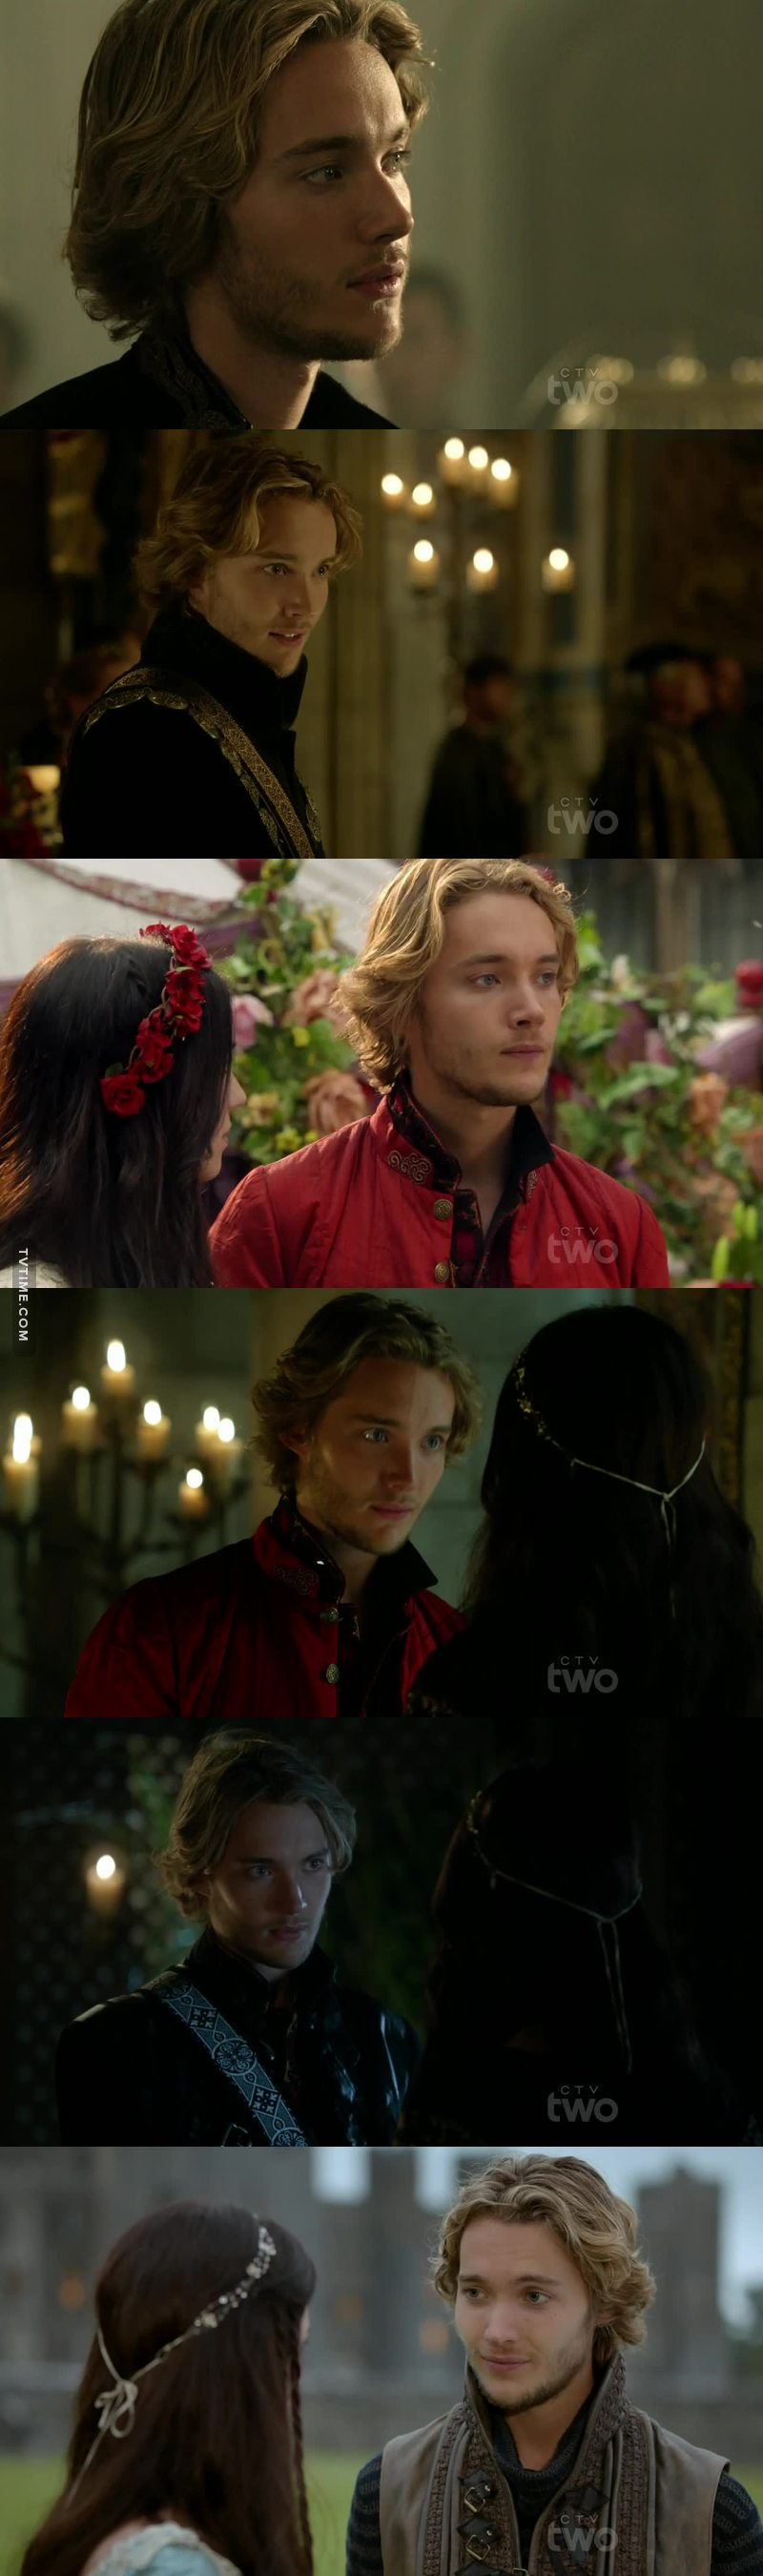 he looks perfect in every scene